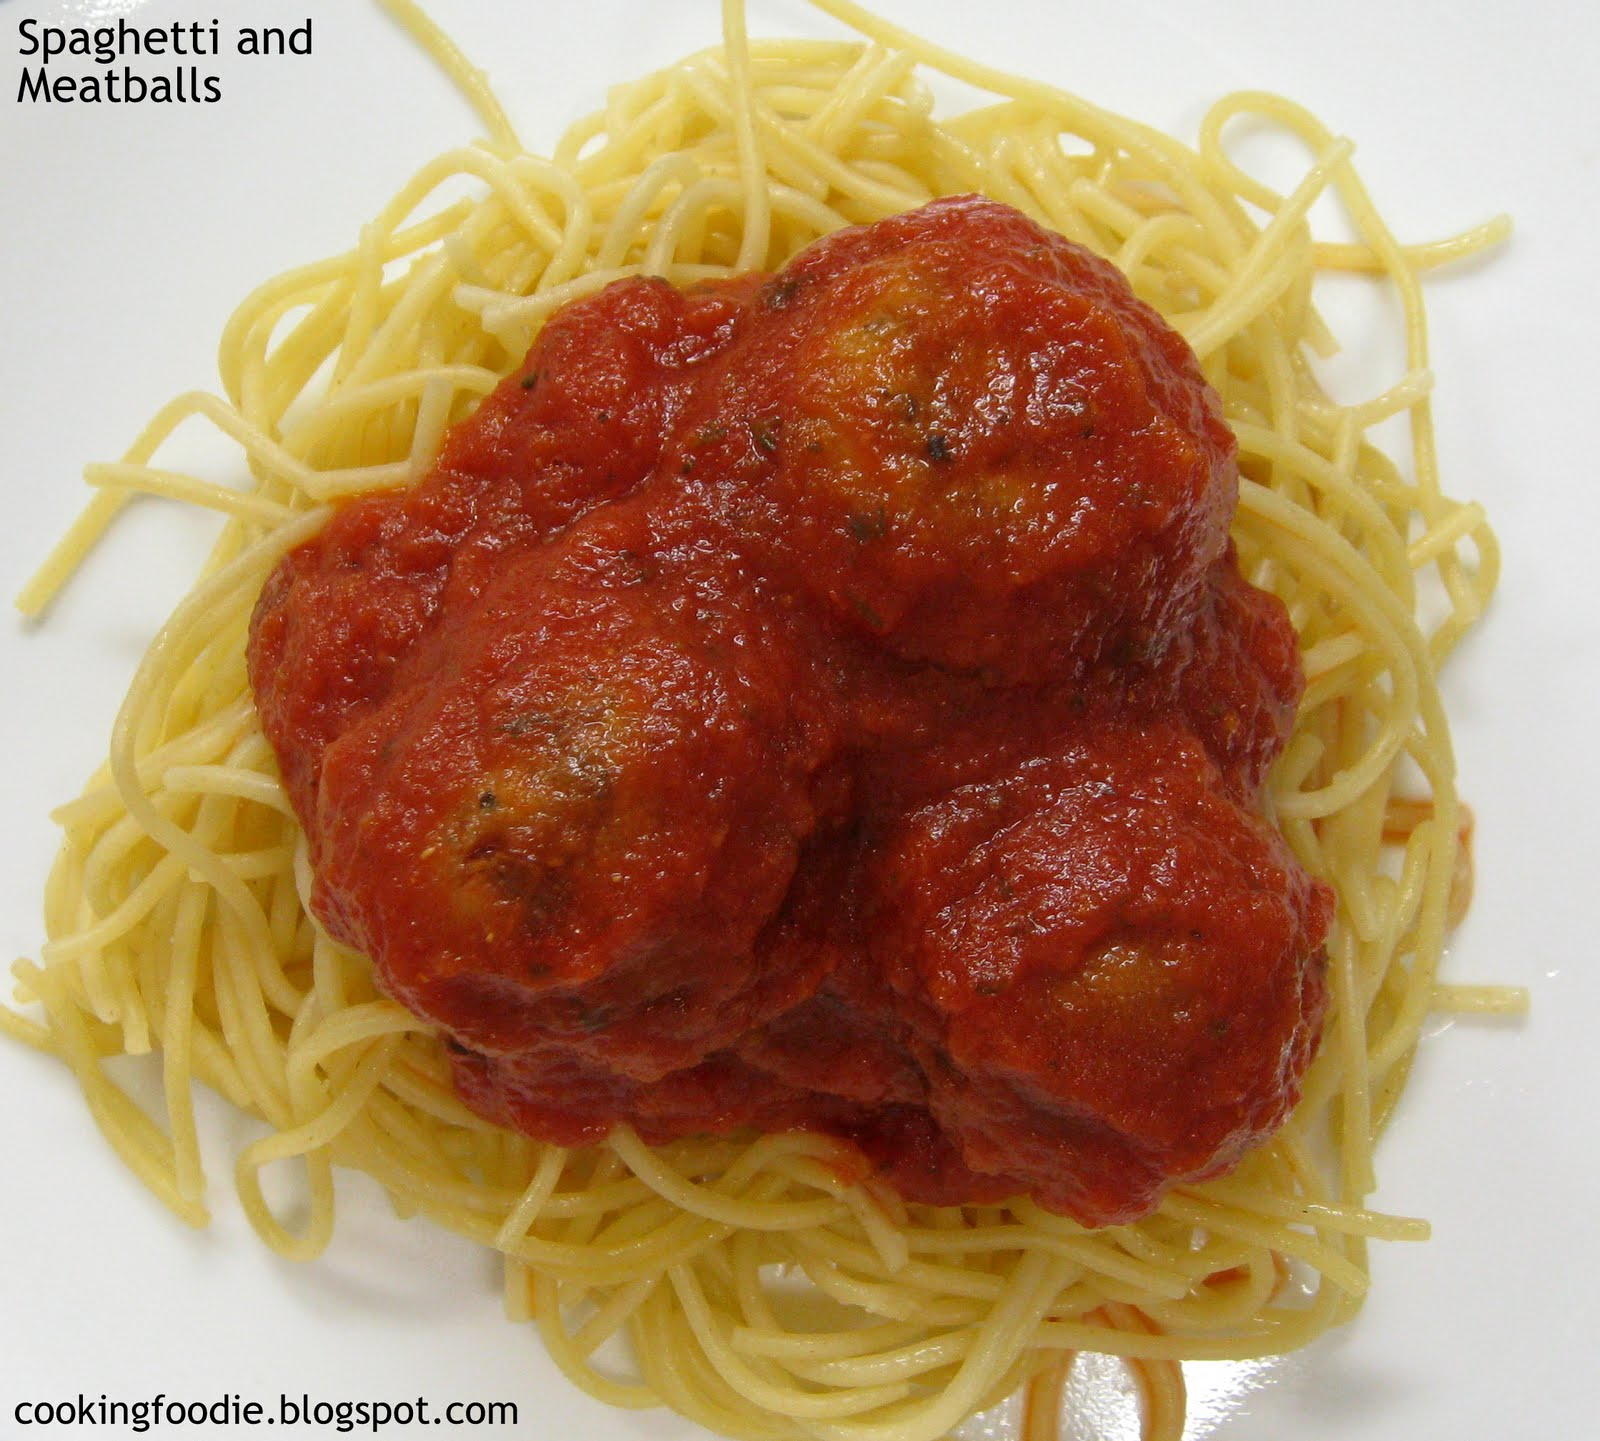 365 days of Eating: Spaghetti and Meatballs - the vegetarian version